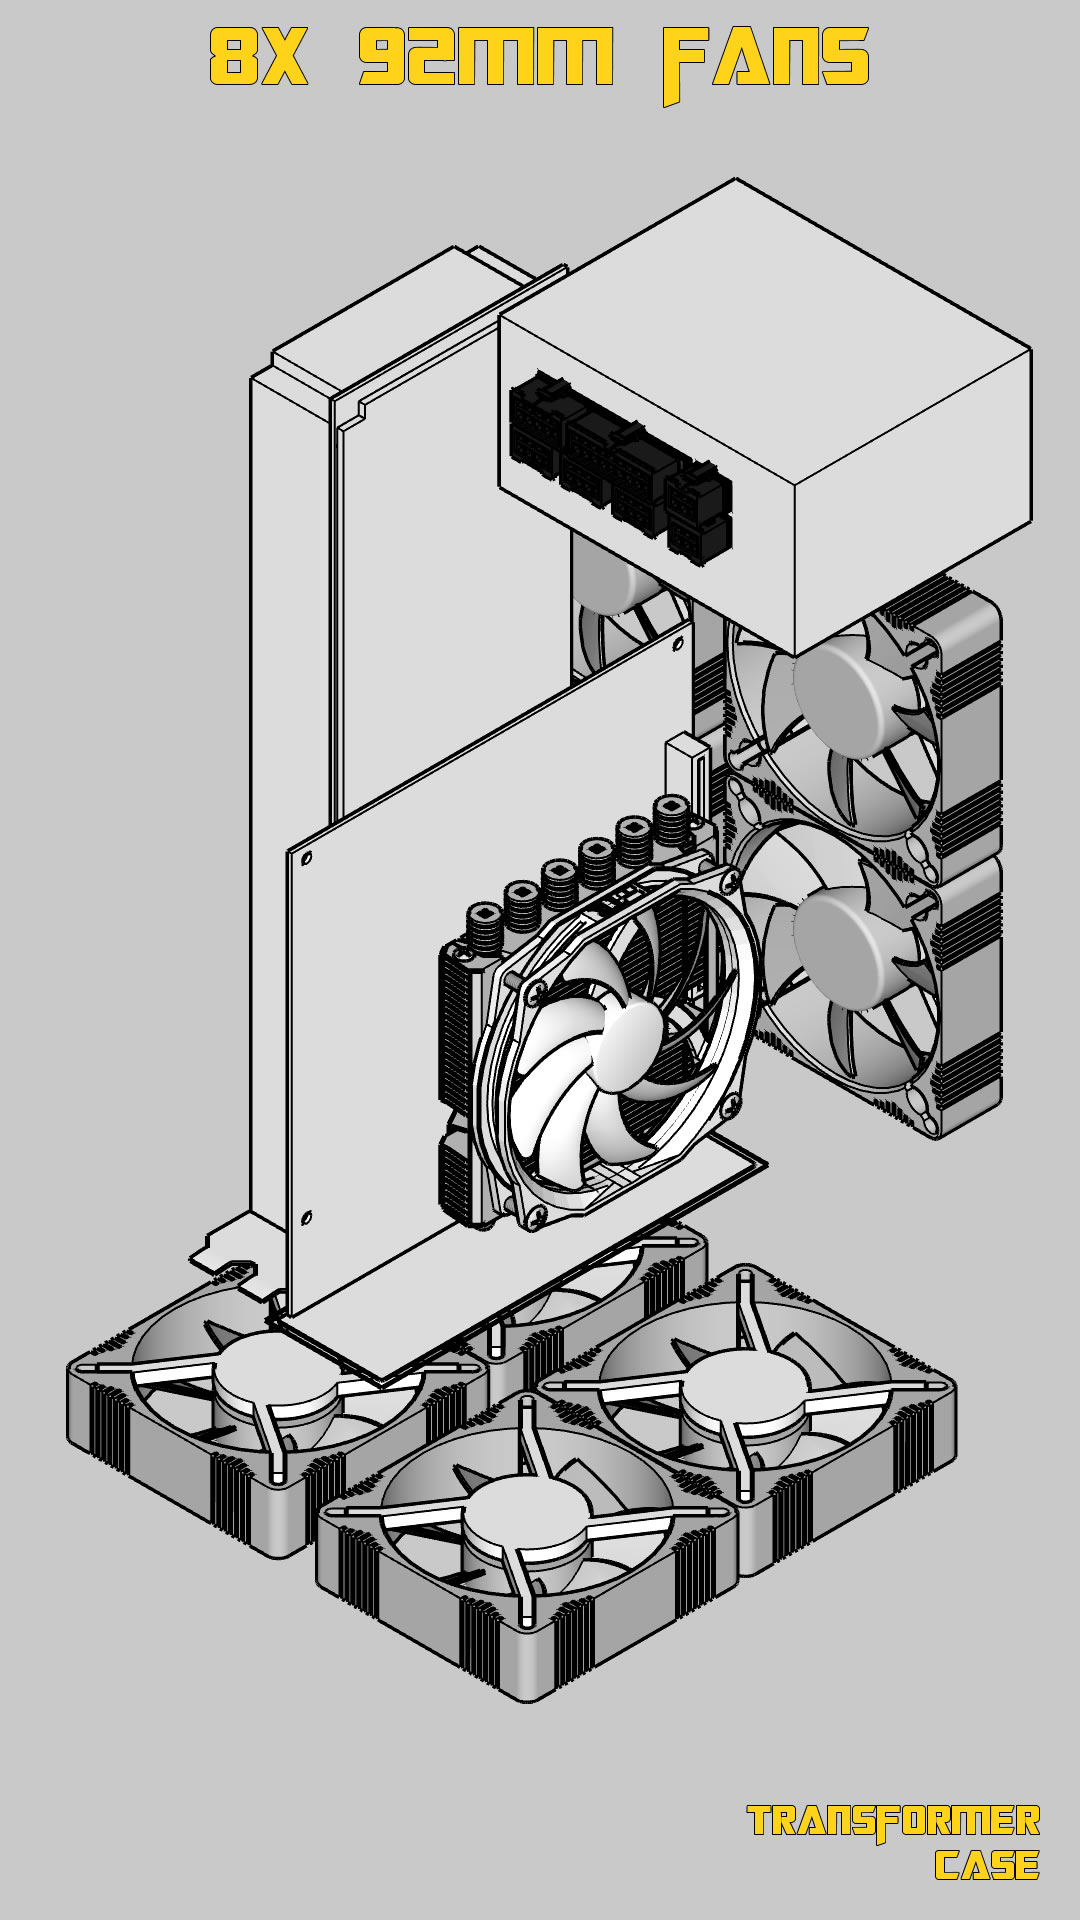 92mm-fan-cooling-isometric.jpg